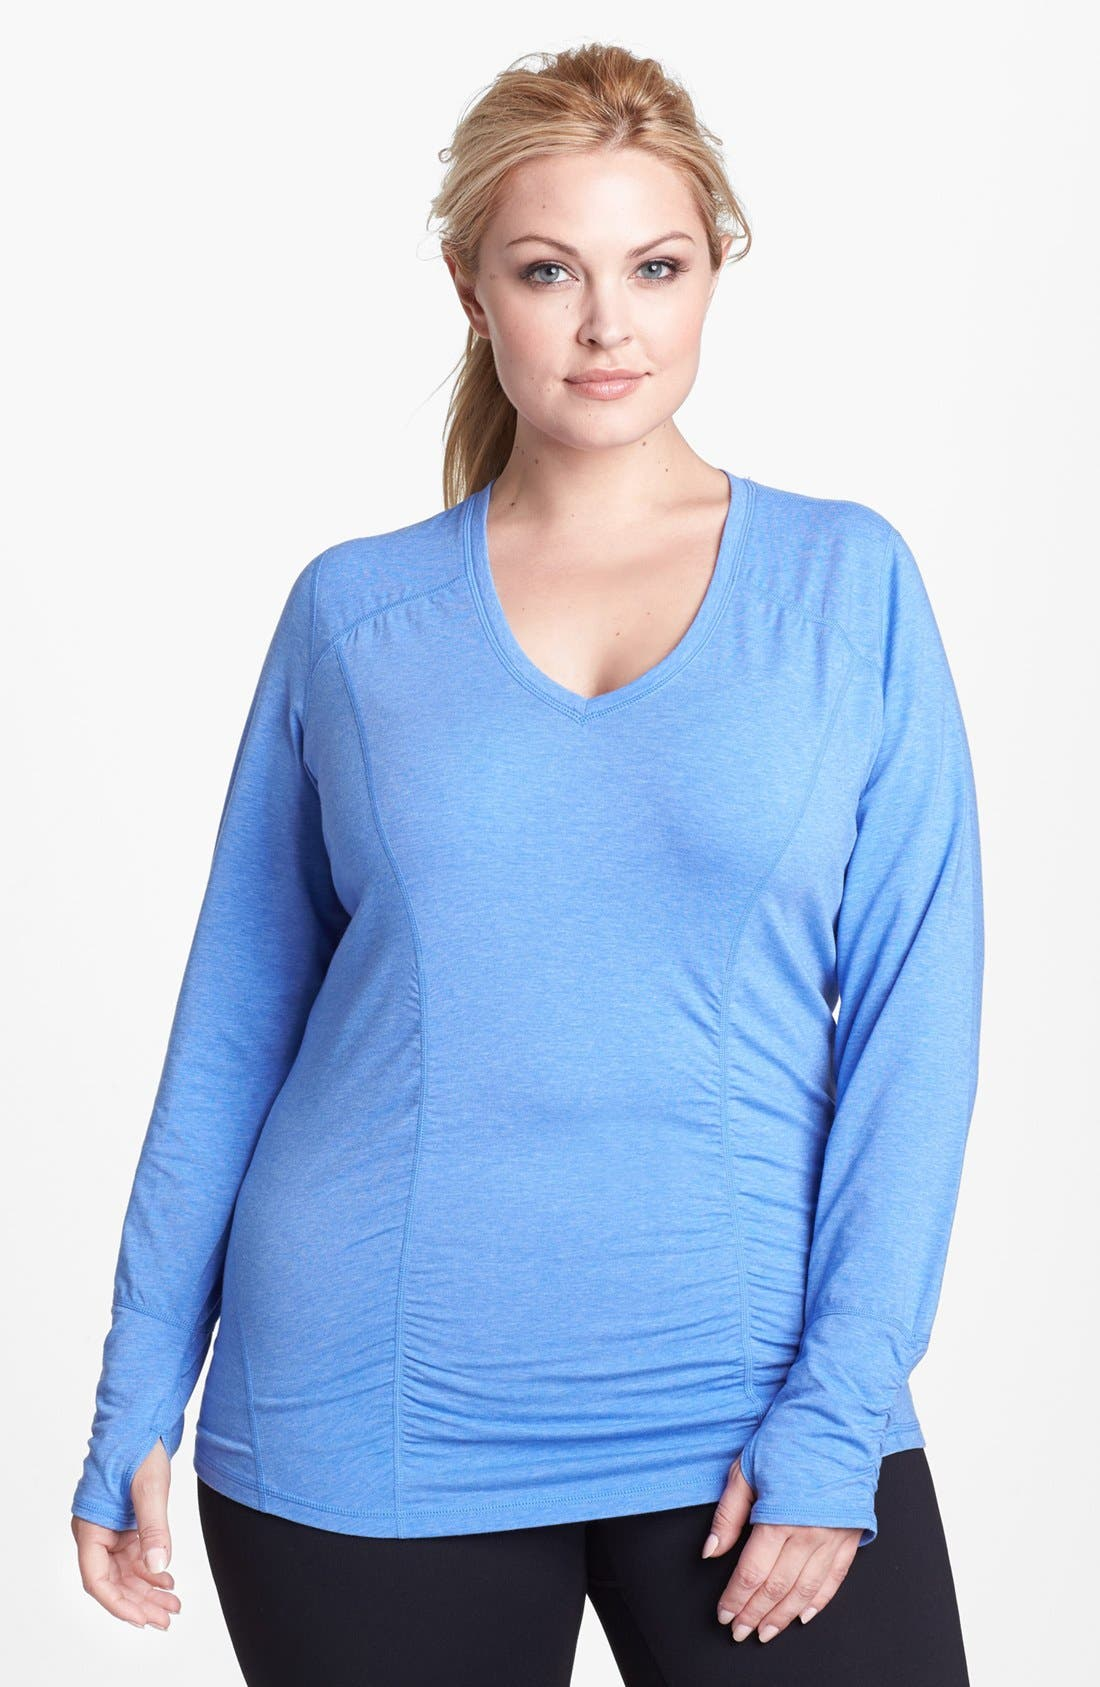 Alternate Image 1 Selected - Zella 'Z 5' Long Sleeve Tee (Plus Size)